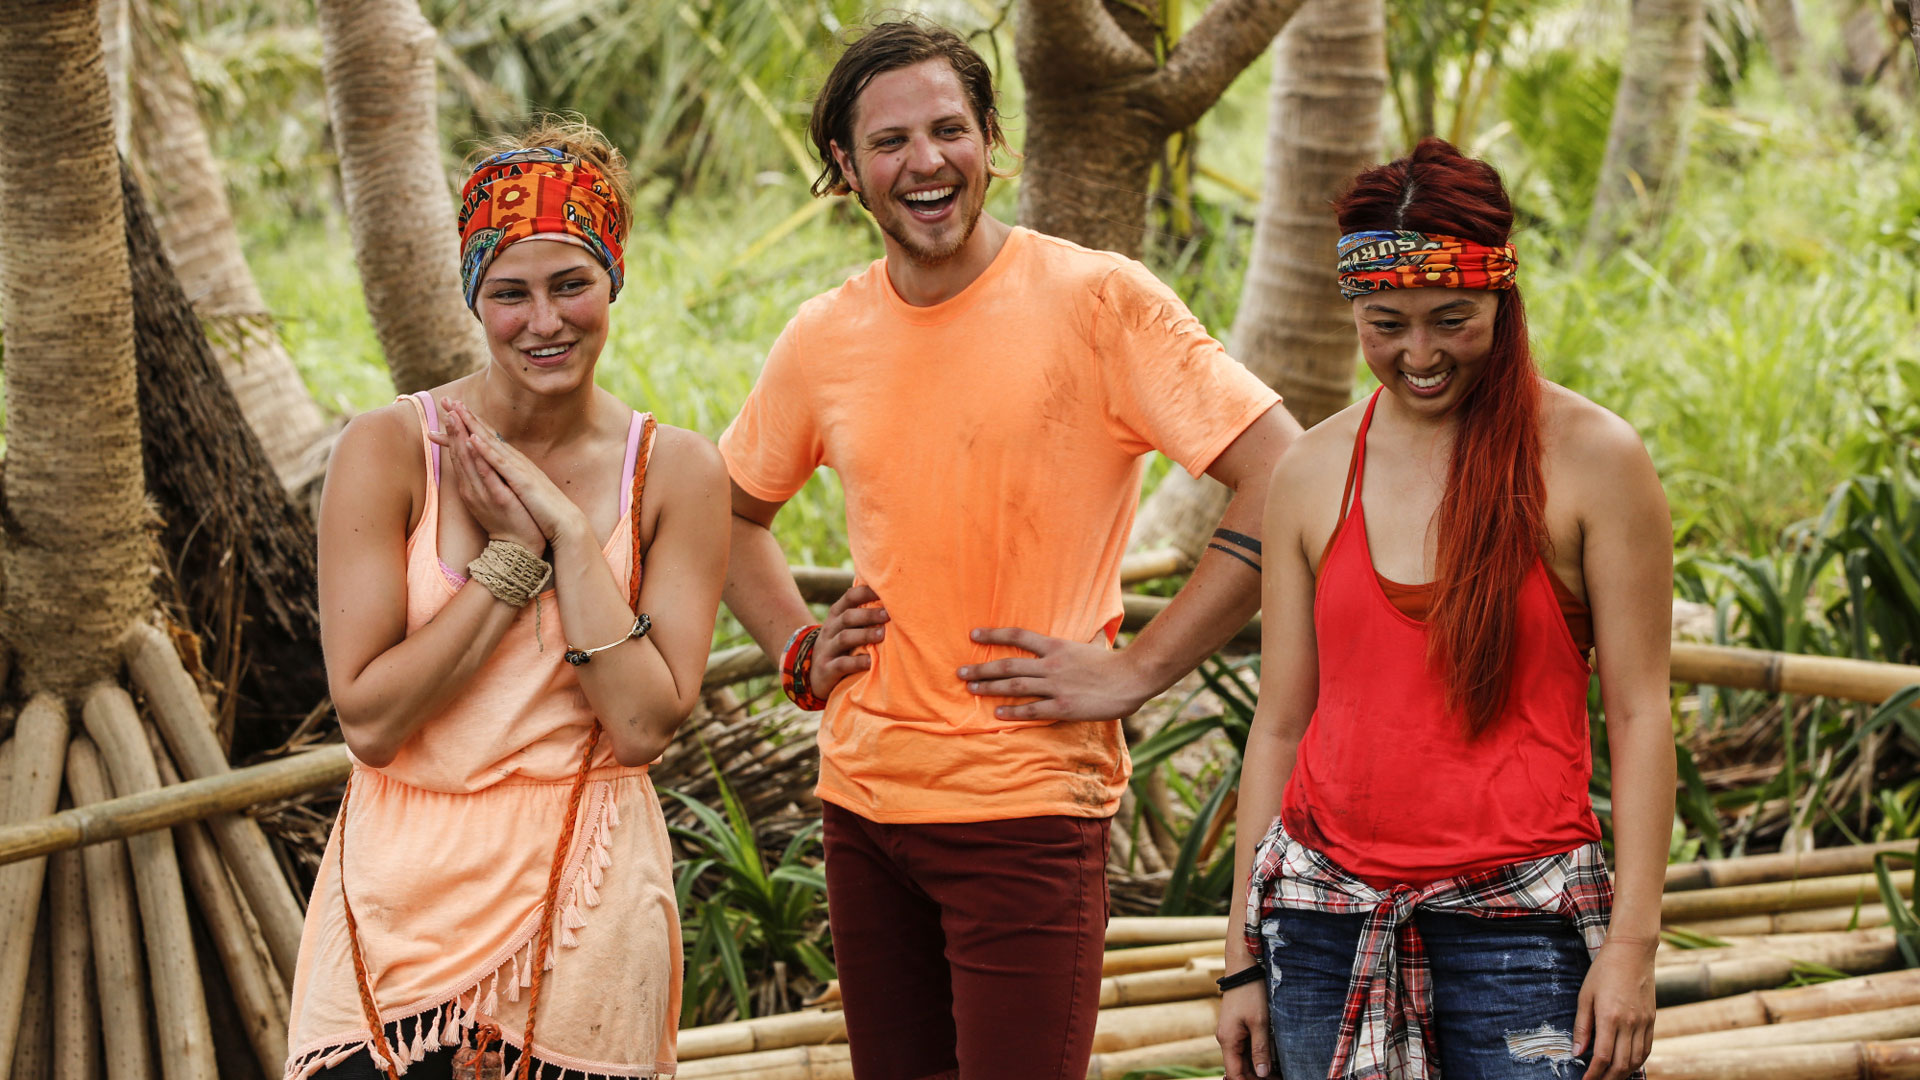 Jessica Figueroa, Taylor Stocker, and Mari Takahashi stand proud as castaways of the Vanua (Millennials) Tribe.